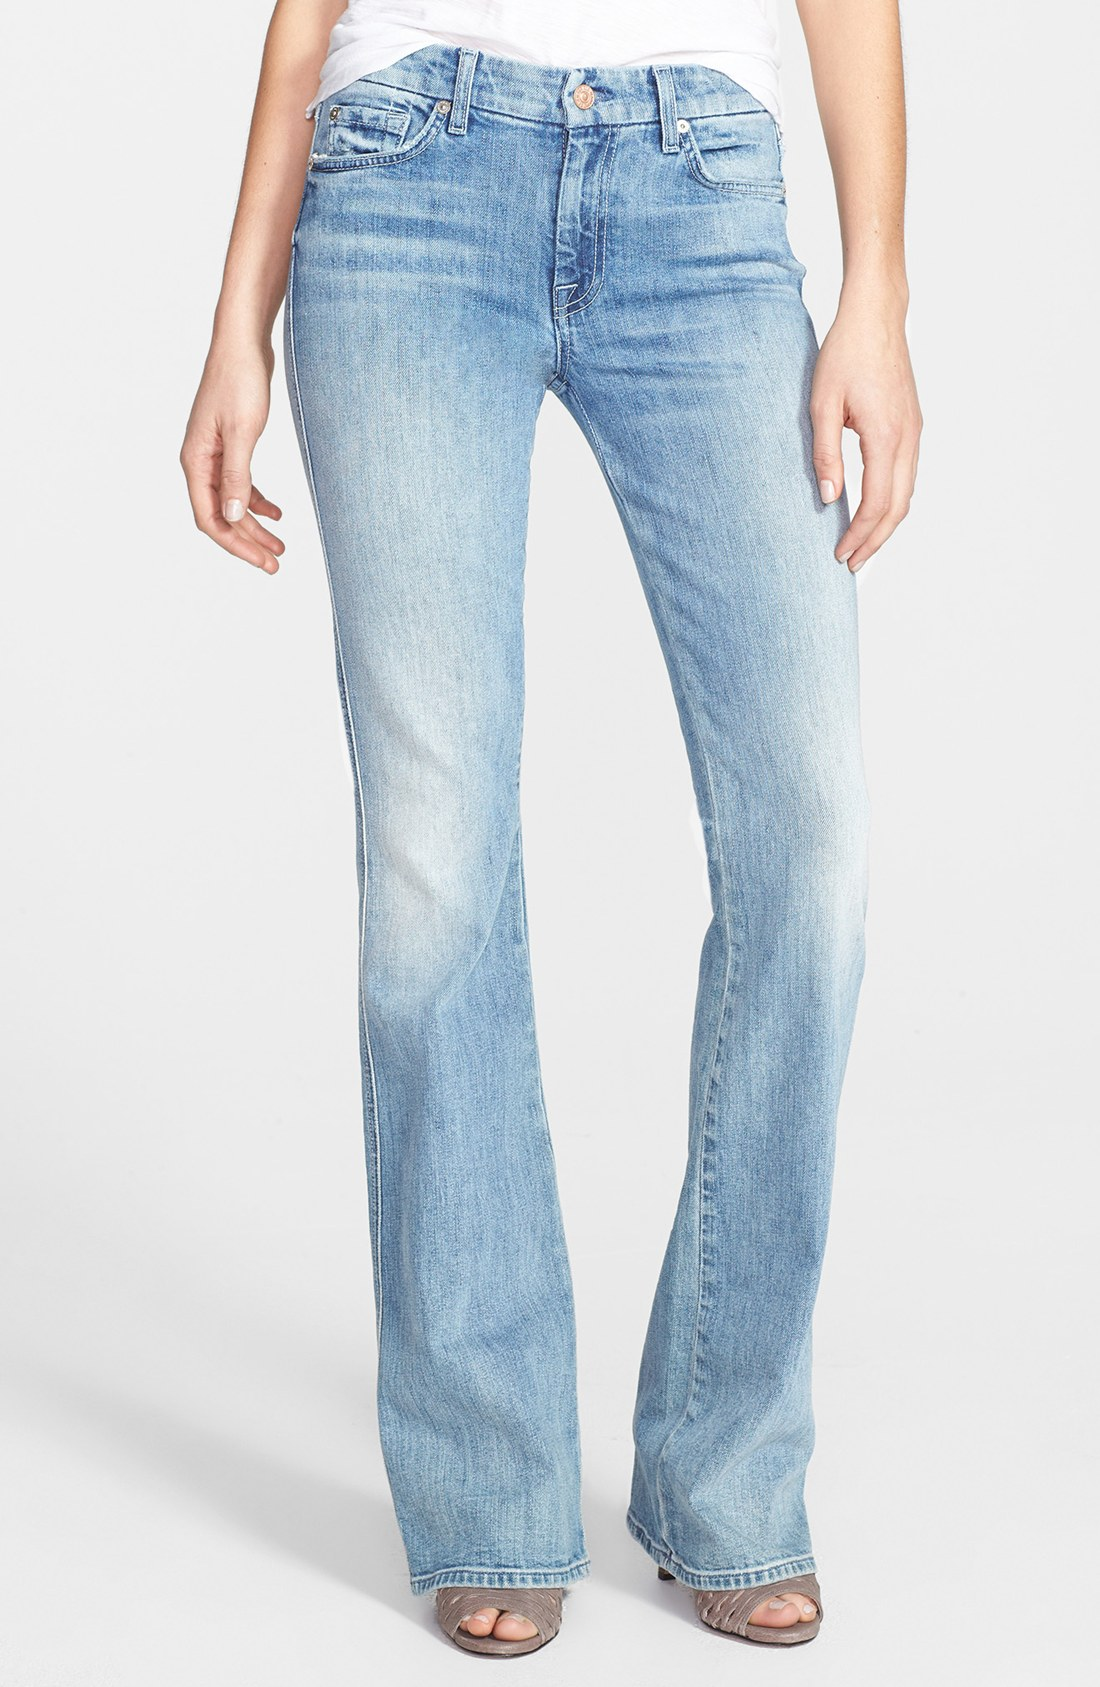 Cool Light Jeans For Women - Legends Jeans